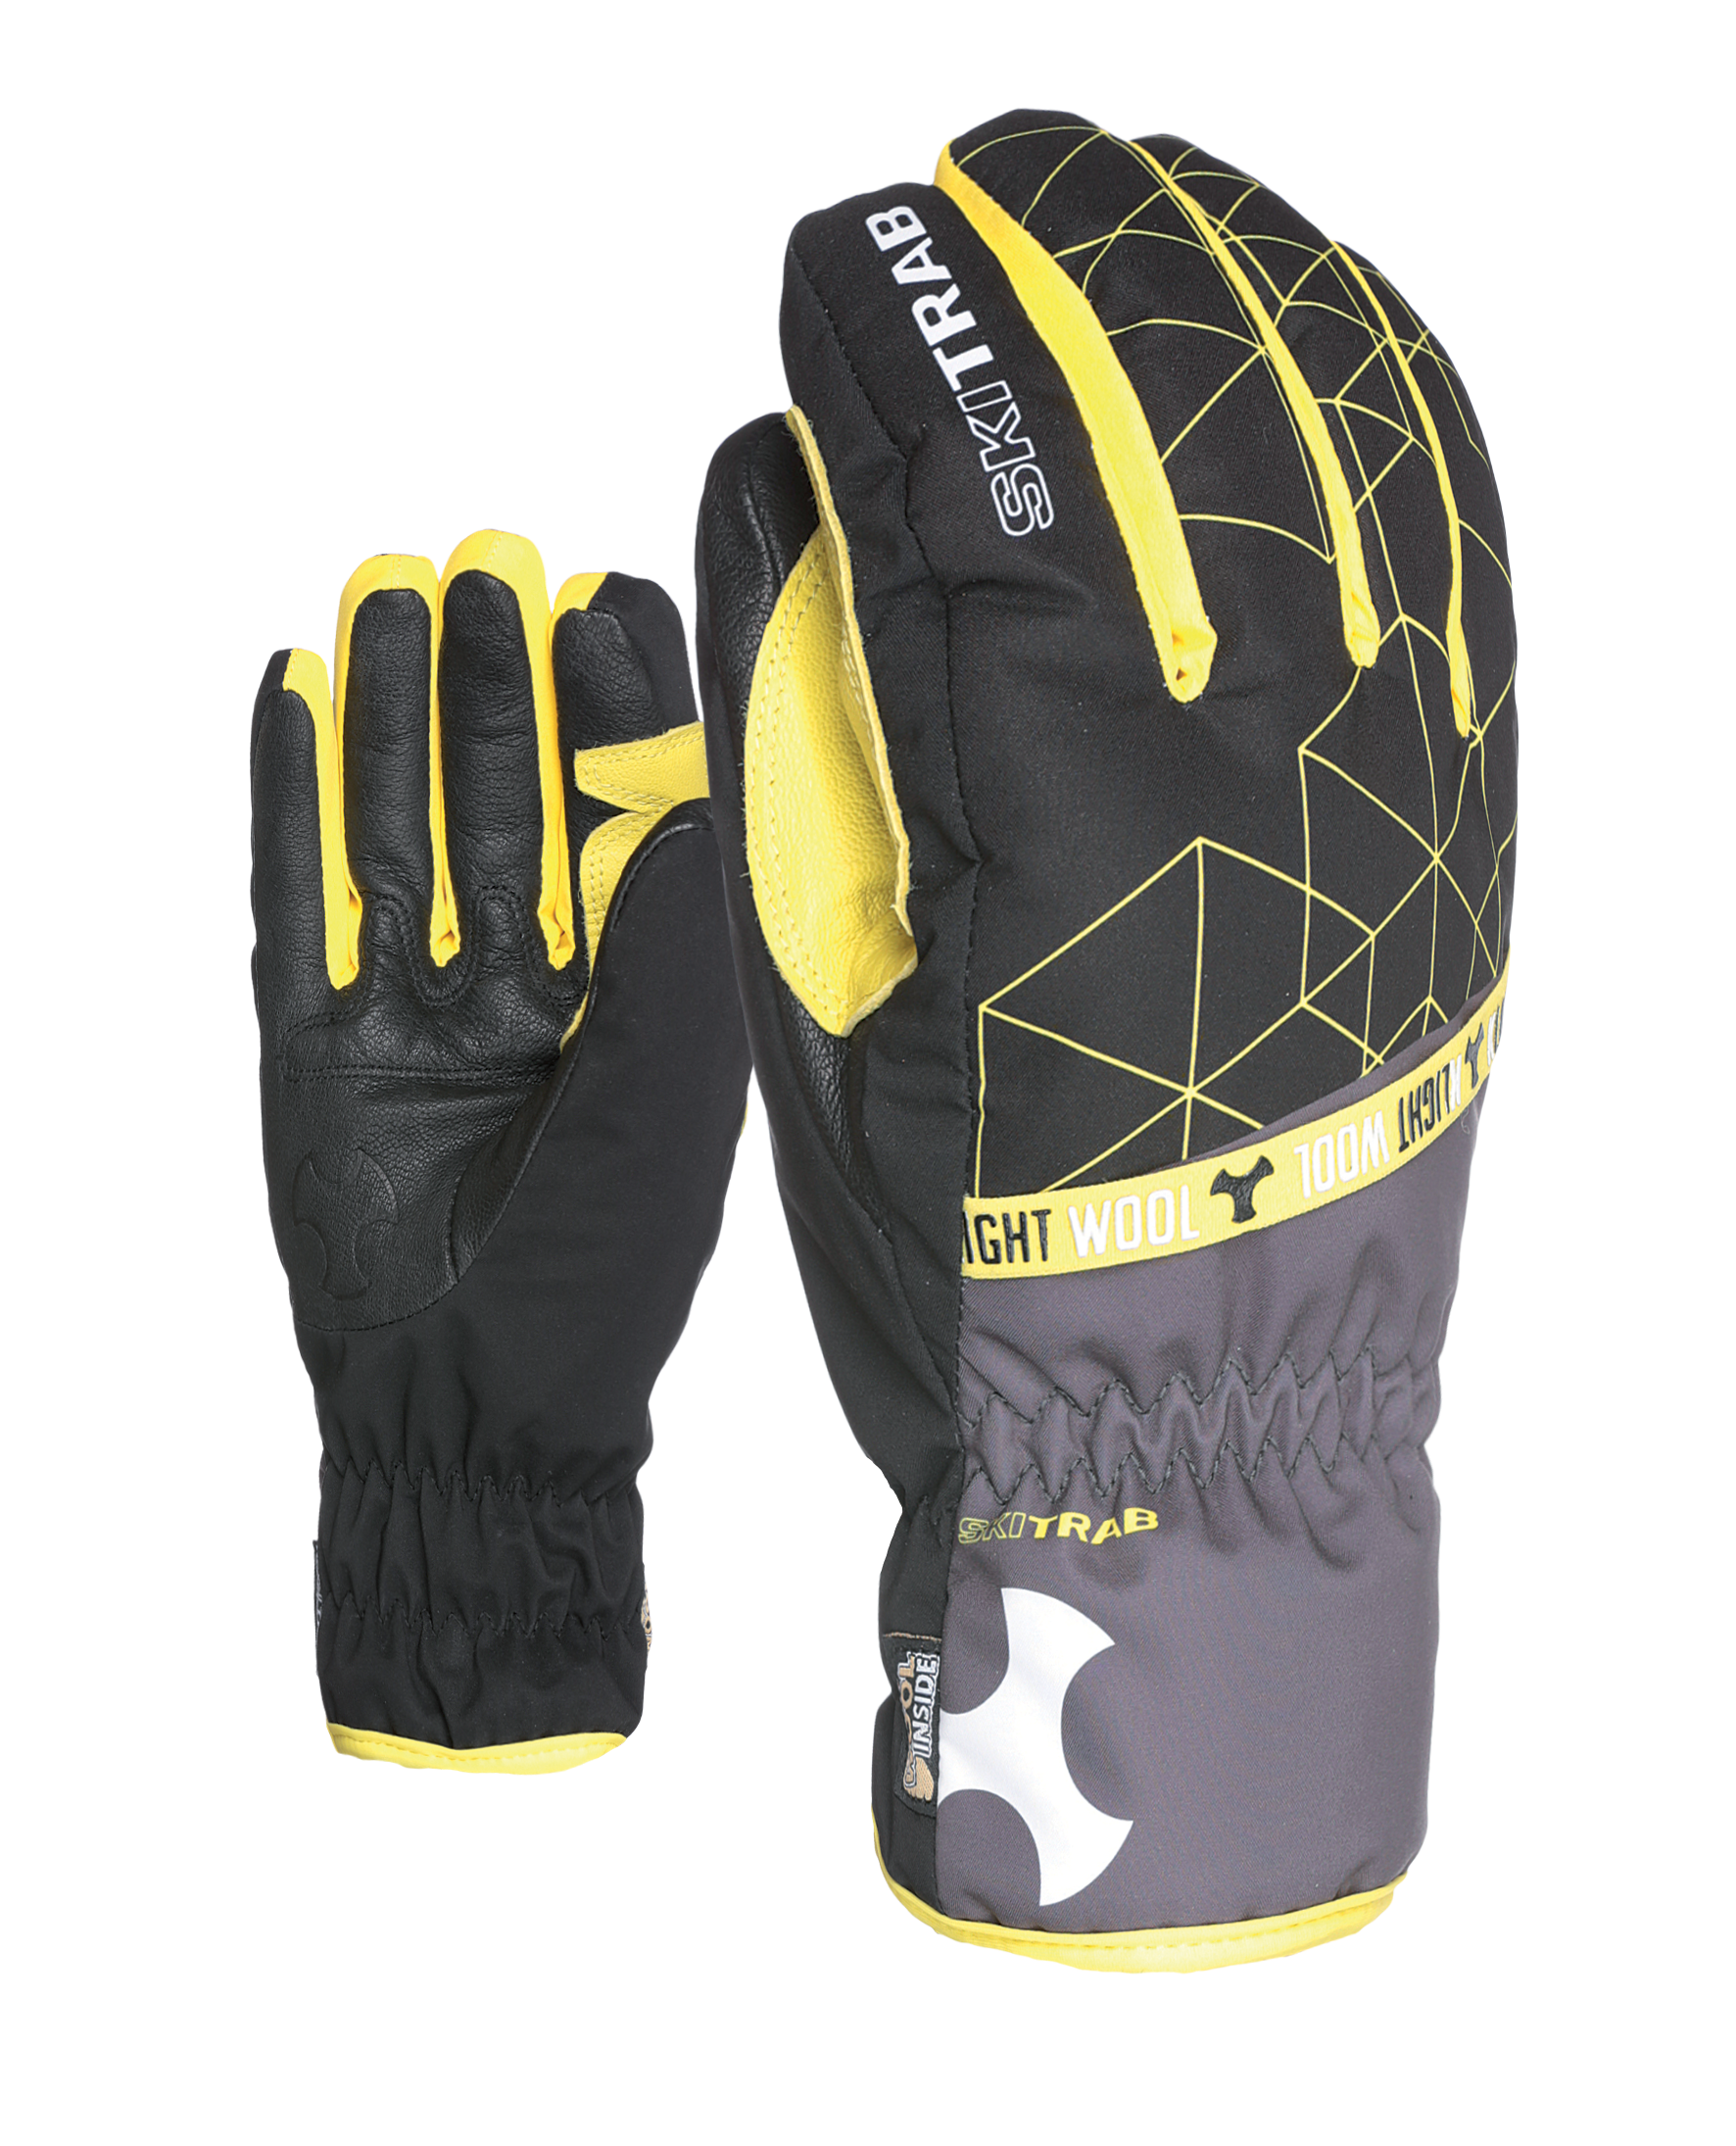 27166_glove-k-light-woll-2.0